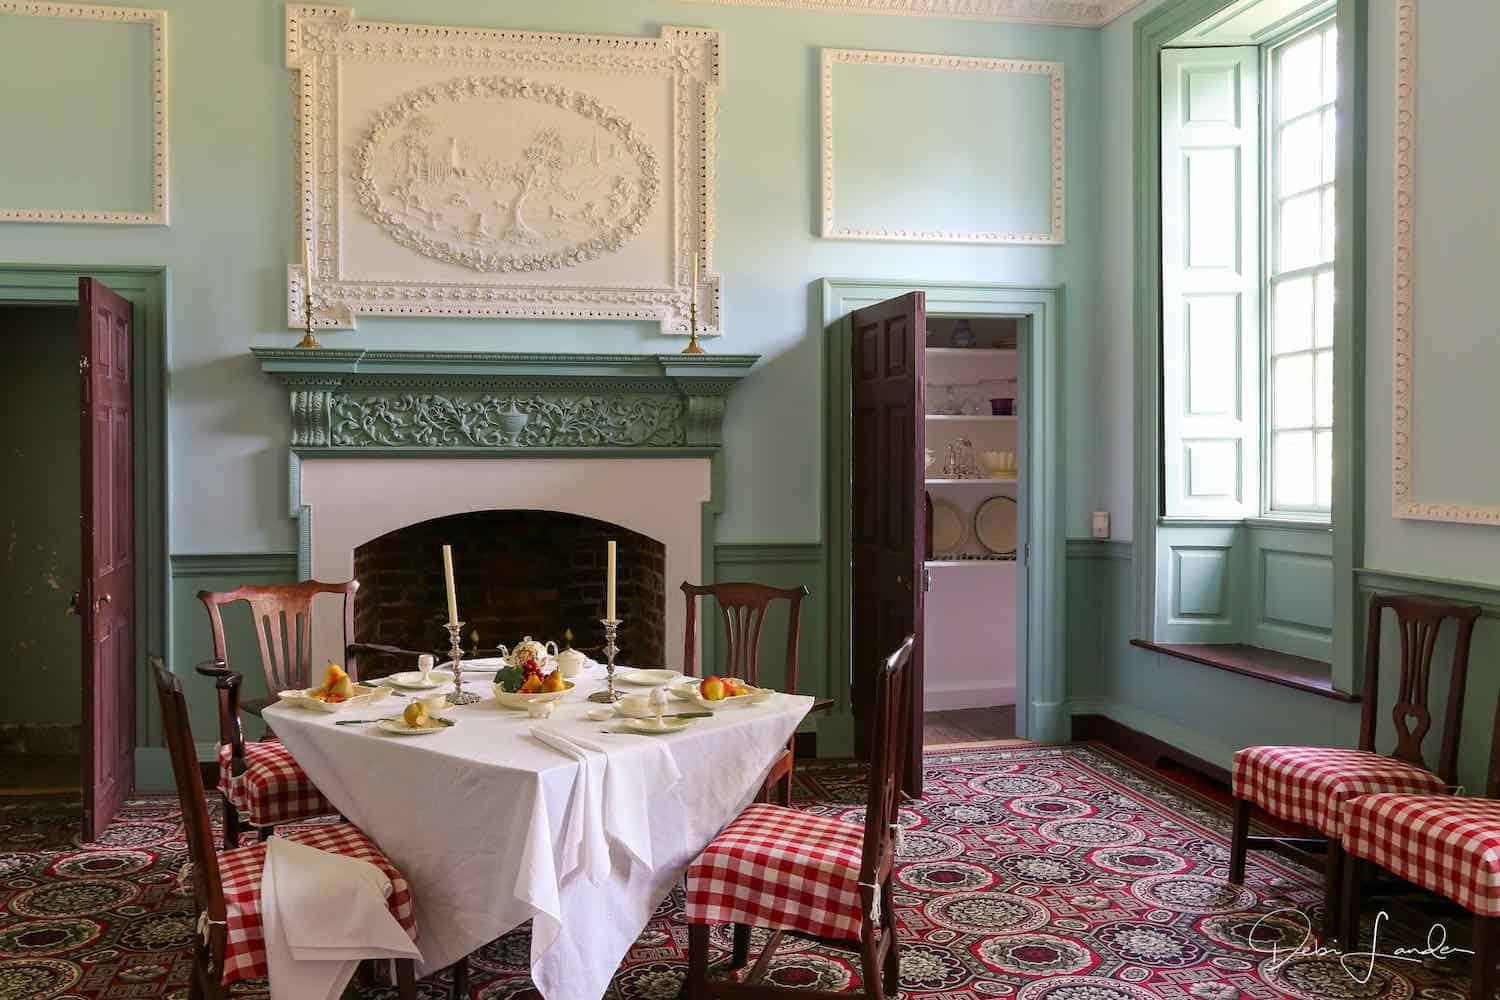 Colonial dining room with green walls and a red print carpet.